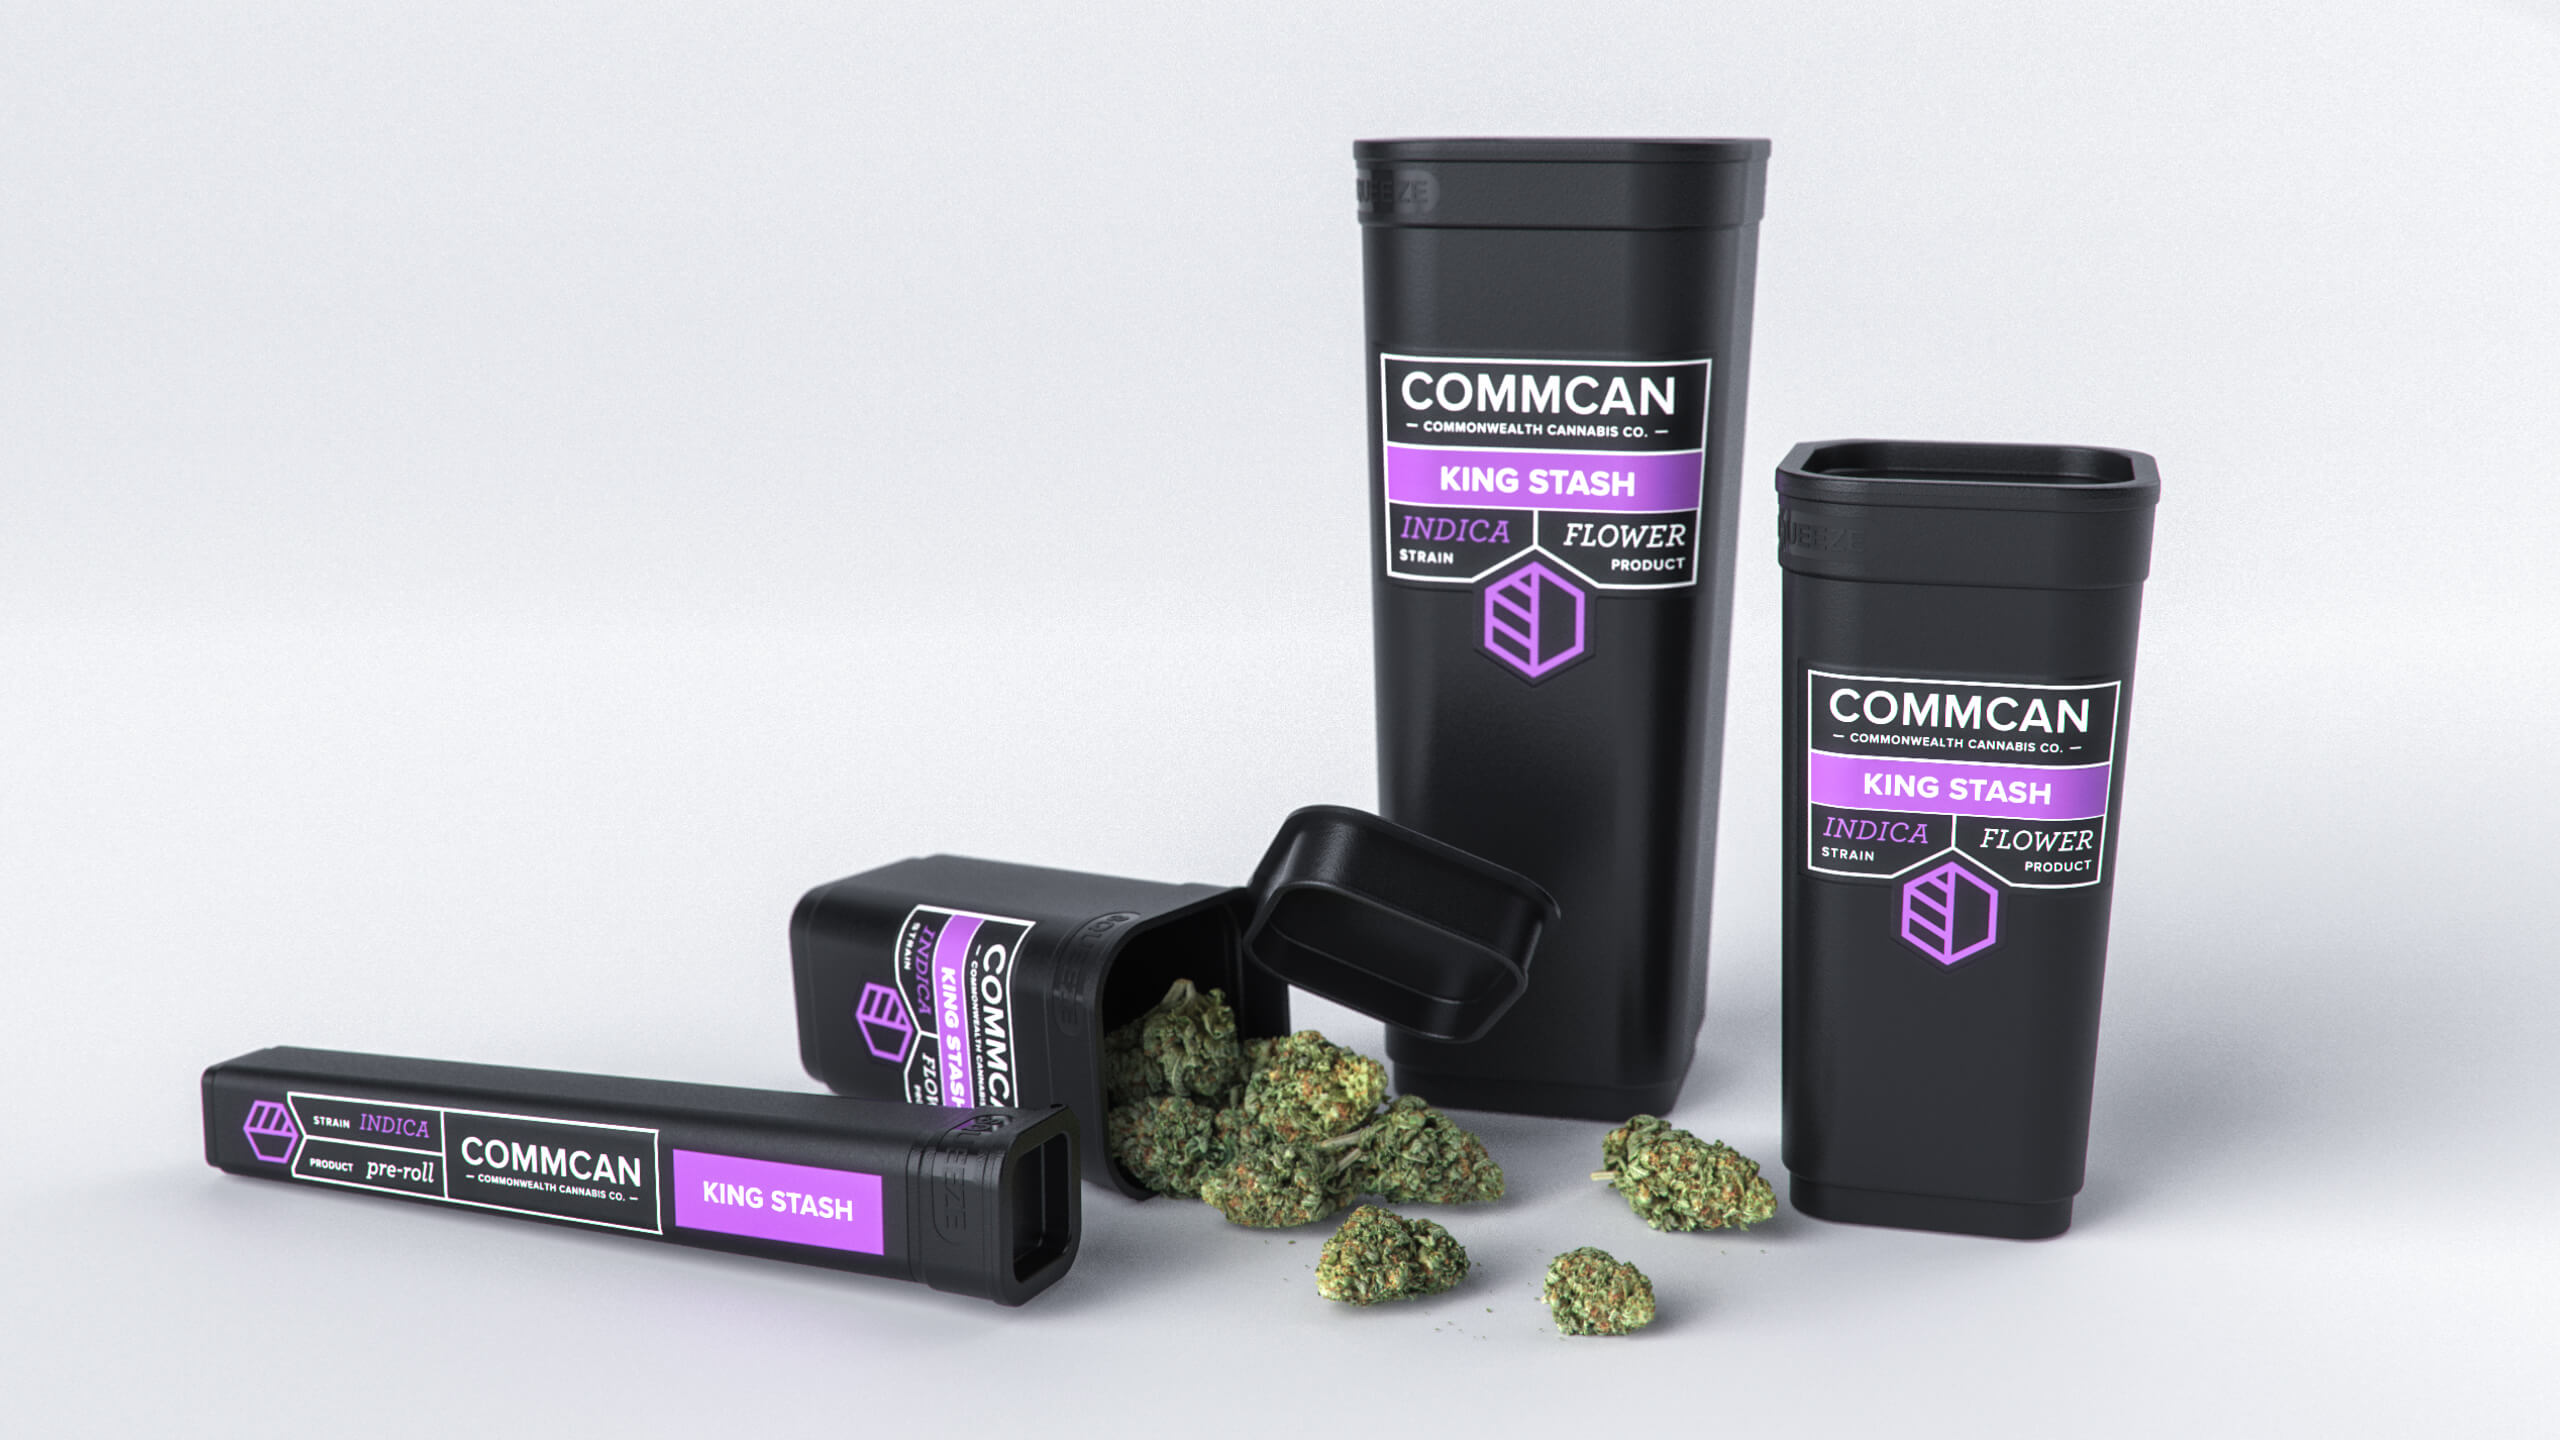 Sprout studios, Boston, industrial design, product design, rendering, CAD, Commcan, cannabis, weed, marijuana, brand, dispensary, vape, oil, concentrate, edible